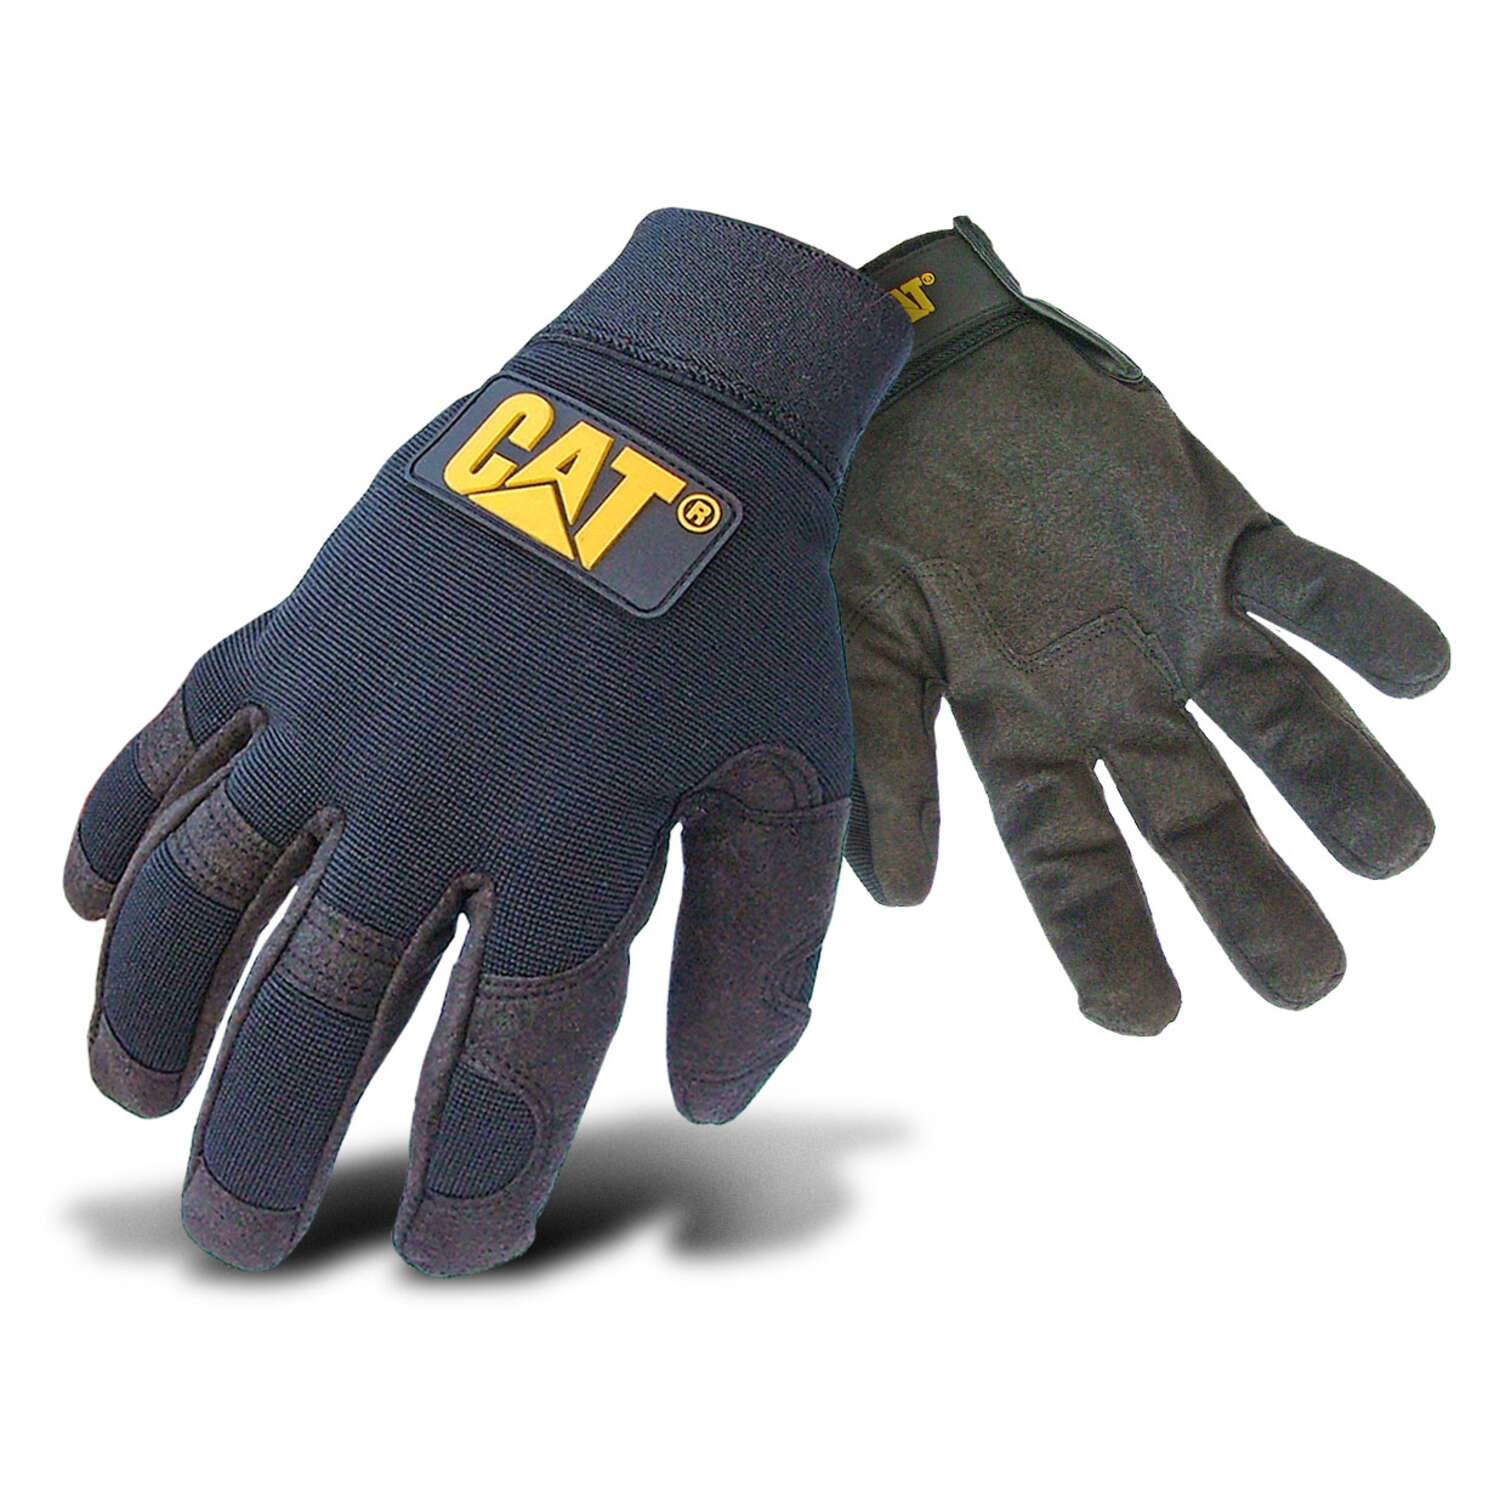 Caterpillar Men's Indoor/Outdoor Mechanic's Glove Black XL 1 pair